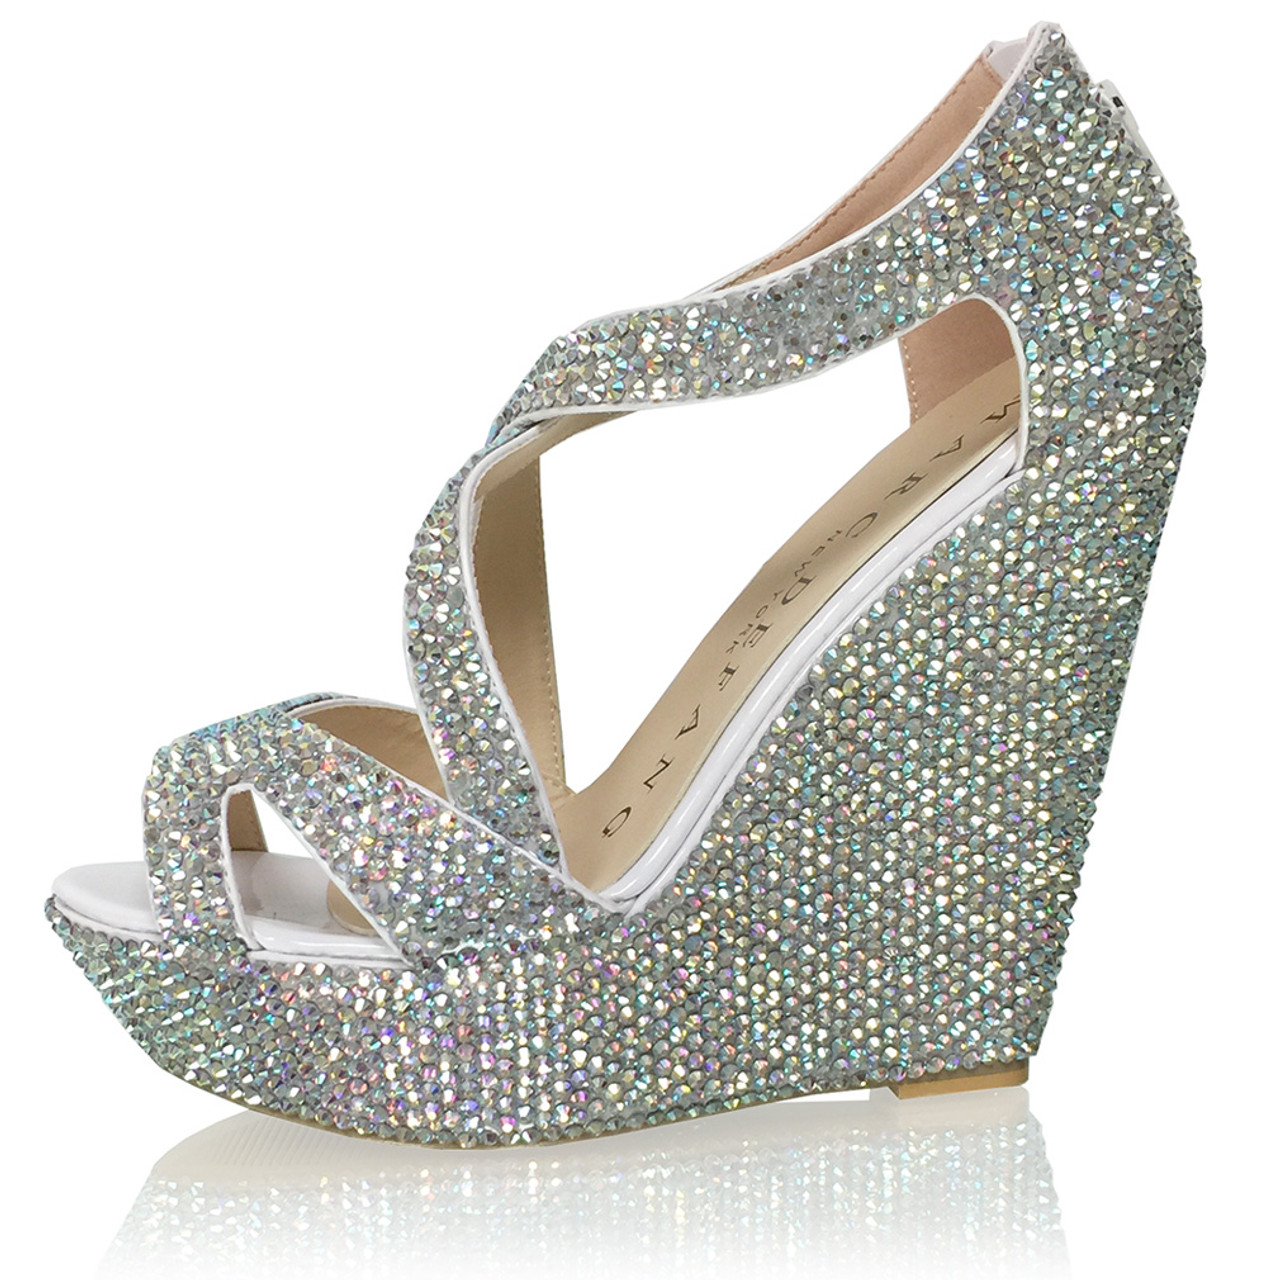 "5.5"" Heels Luxury Crystal Bridal Strappy Platform Wedges"